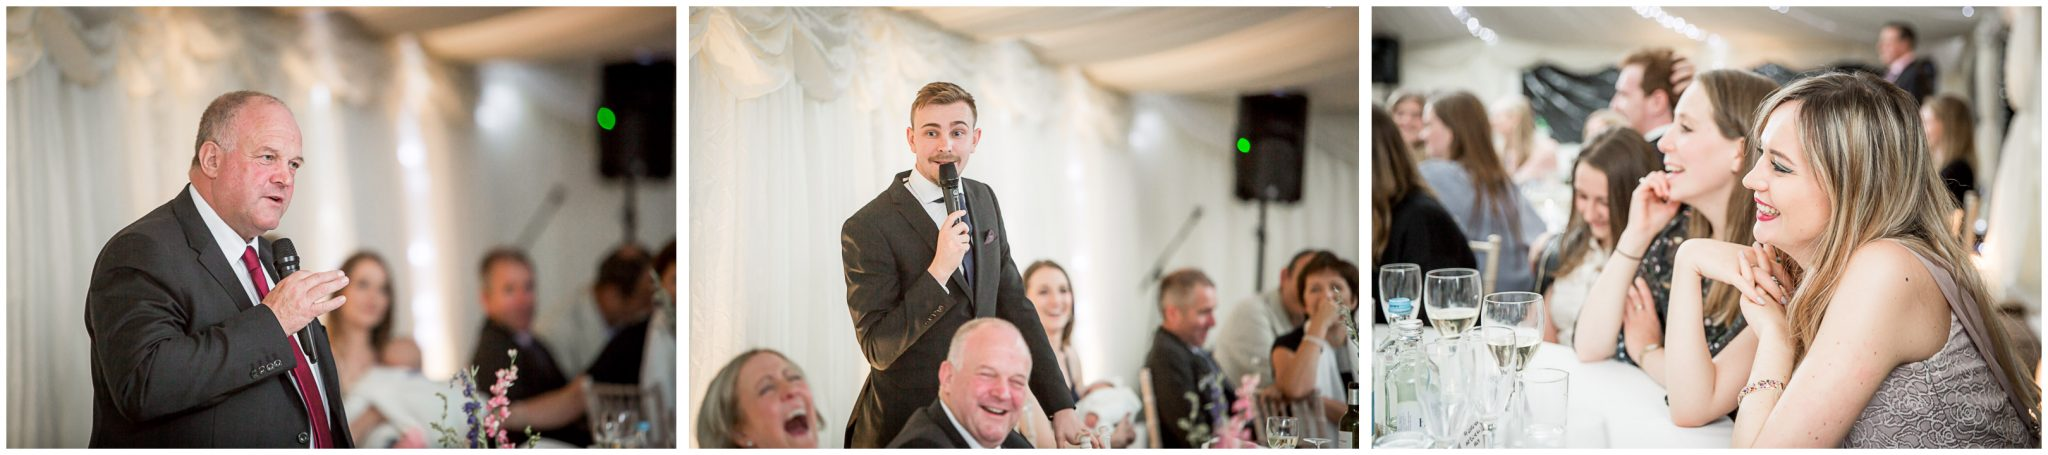 Old Alresford Place wedding photography best man's speech